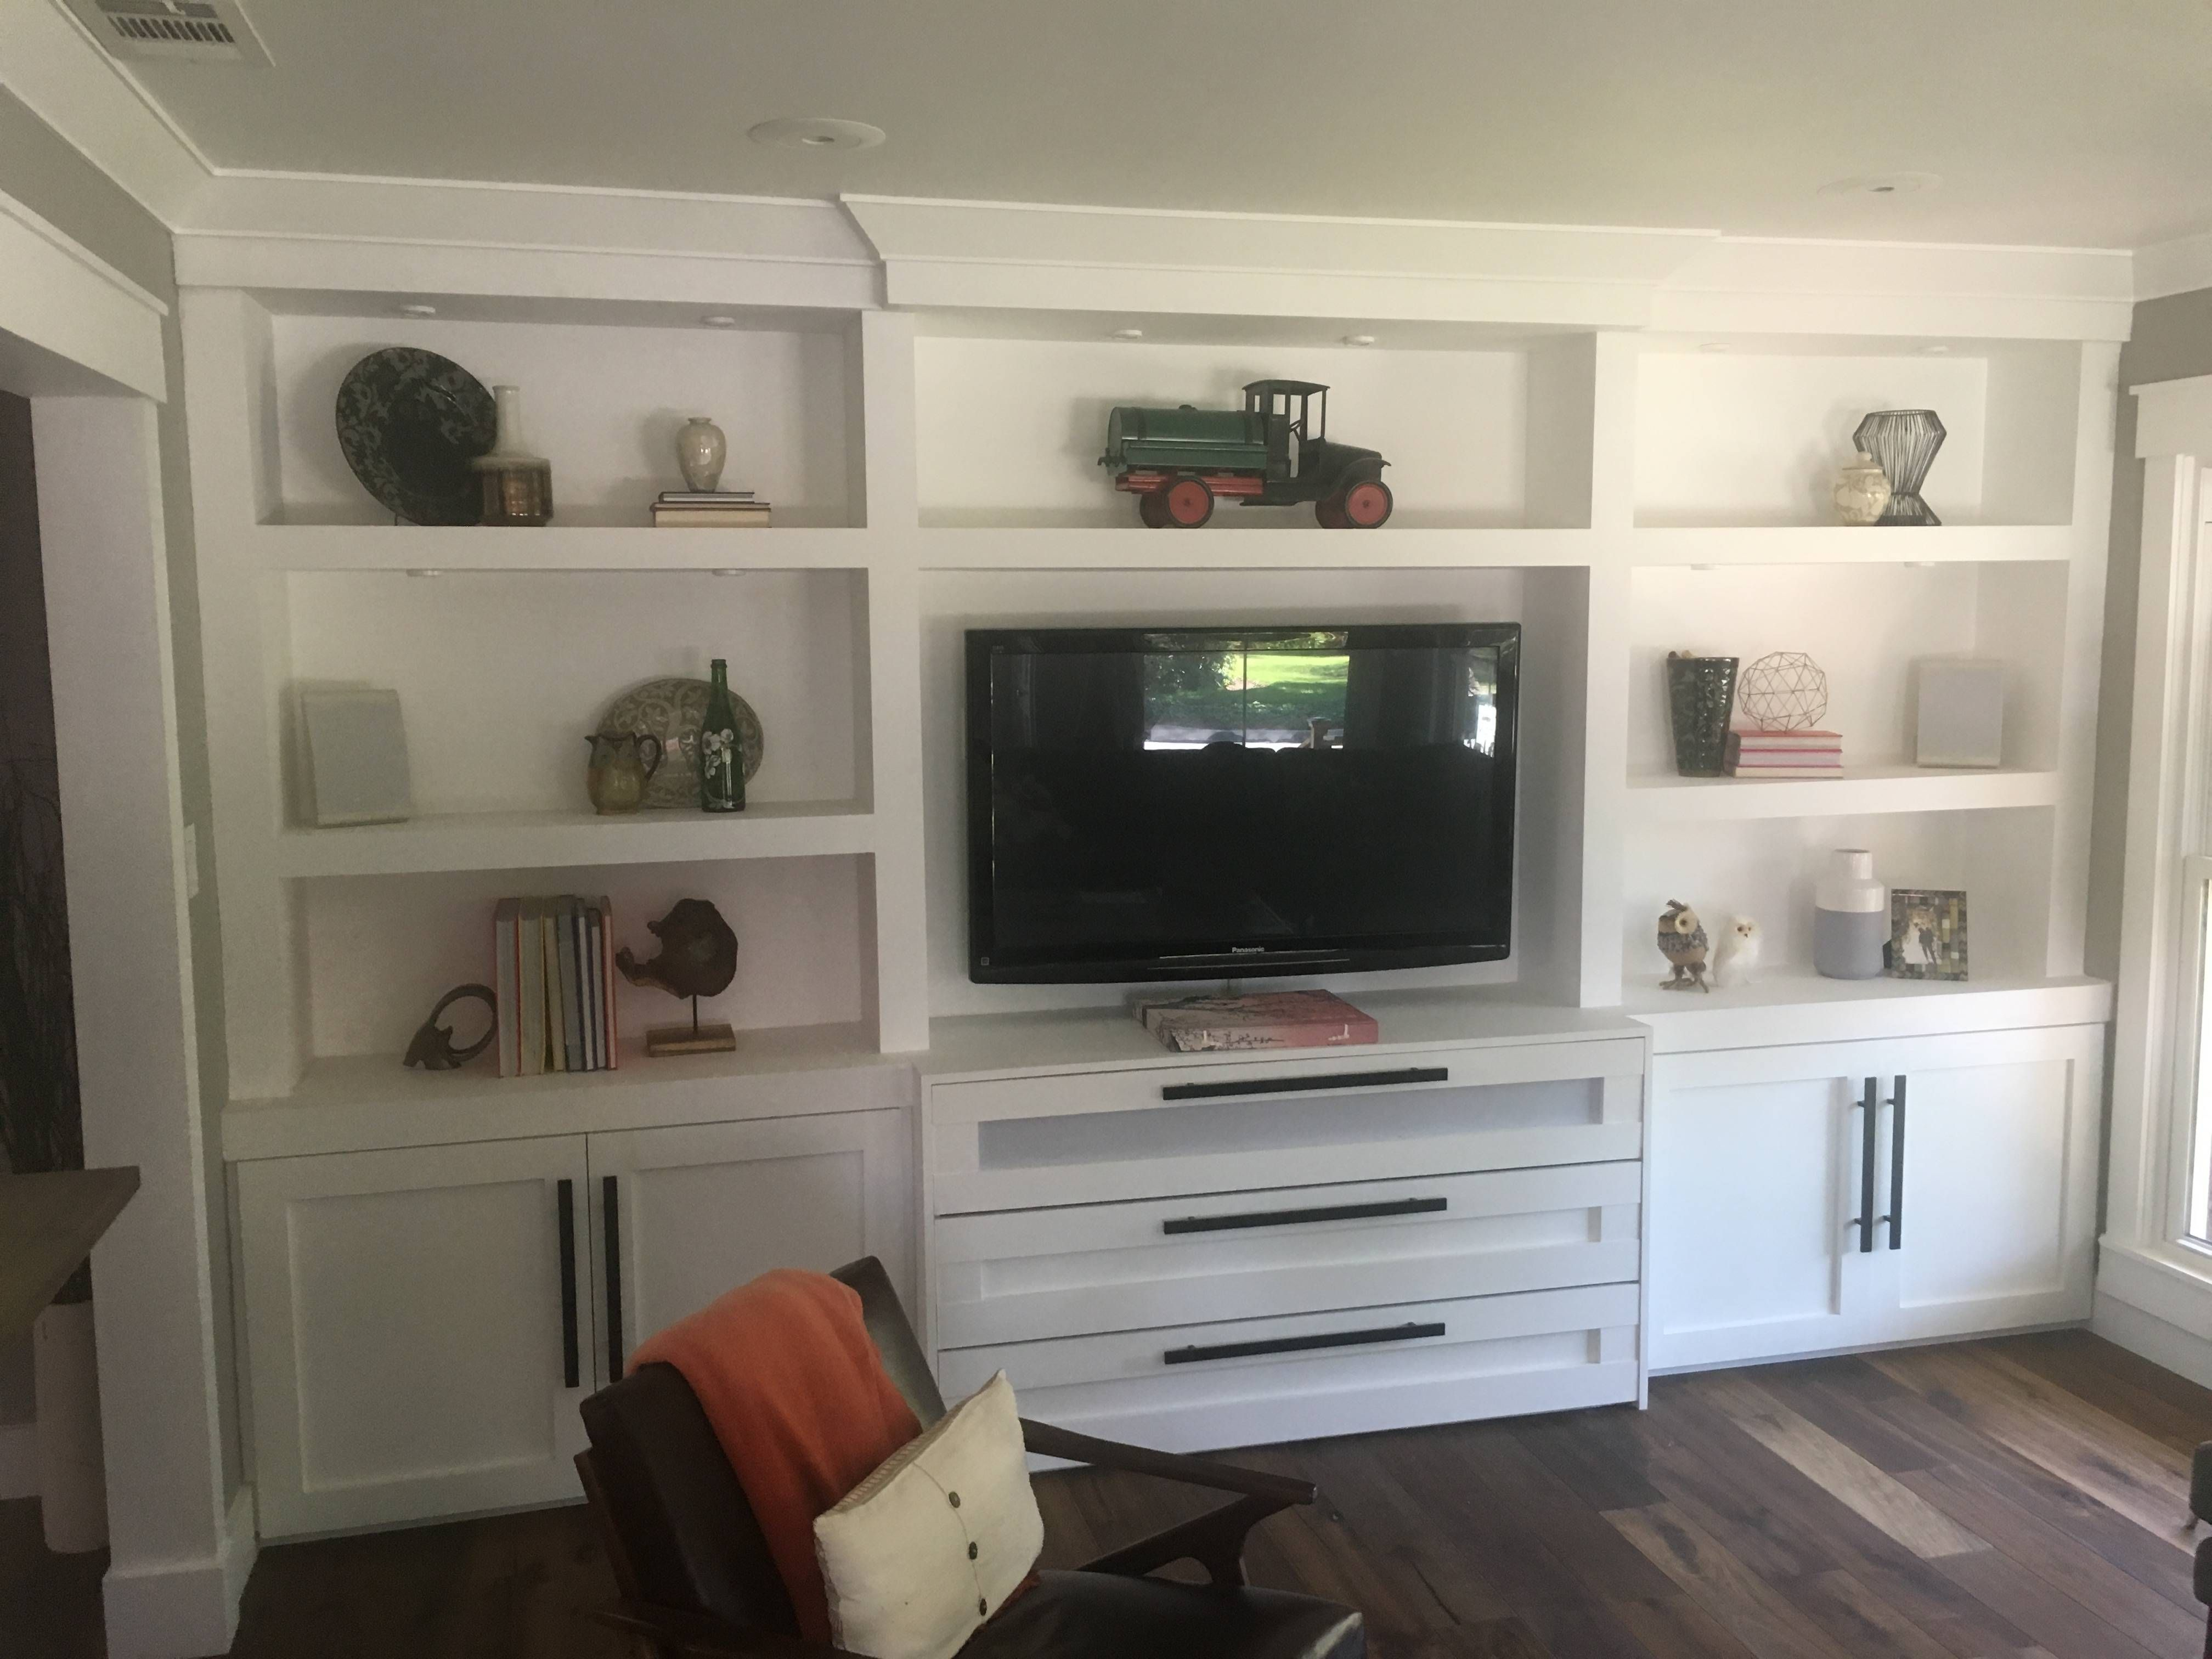 I built a built in entertainment centerbookshelf system in my new i built a built in entertainment centerbookshelf system in my newold diy solutioingenieria Choice Image